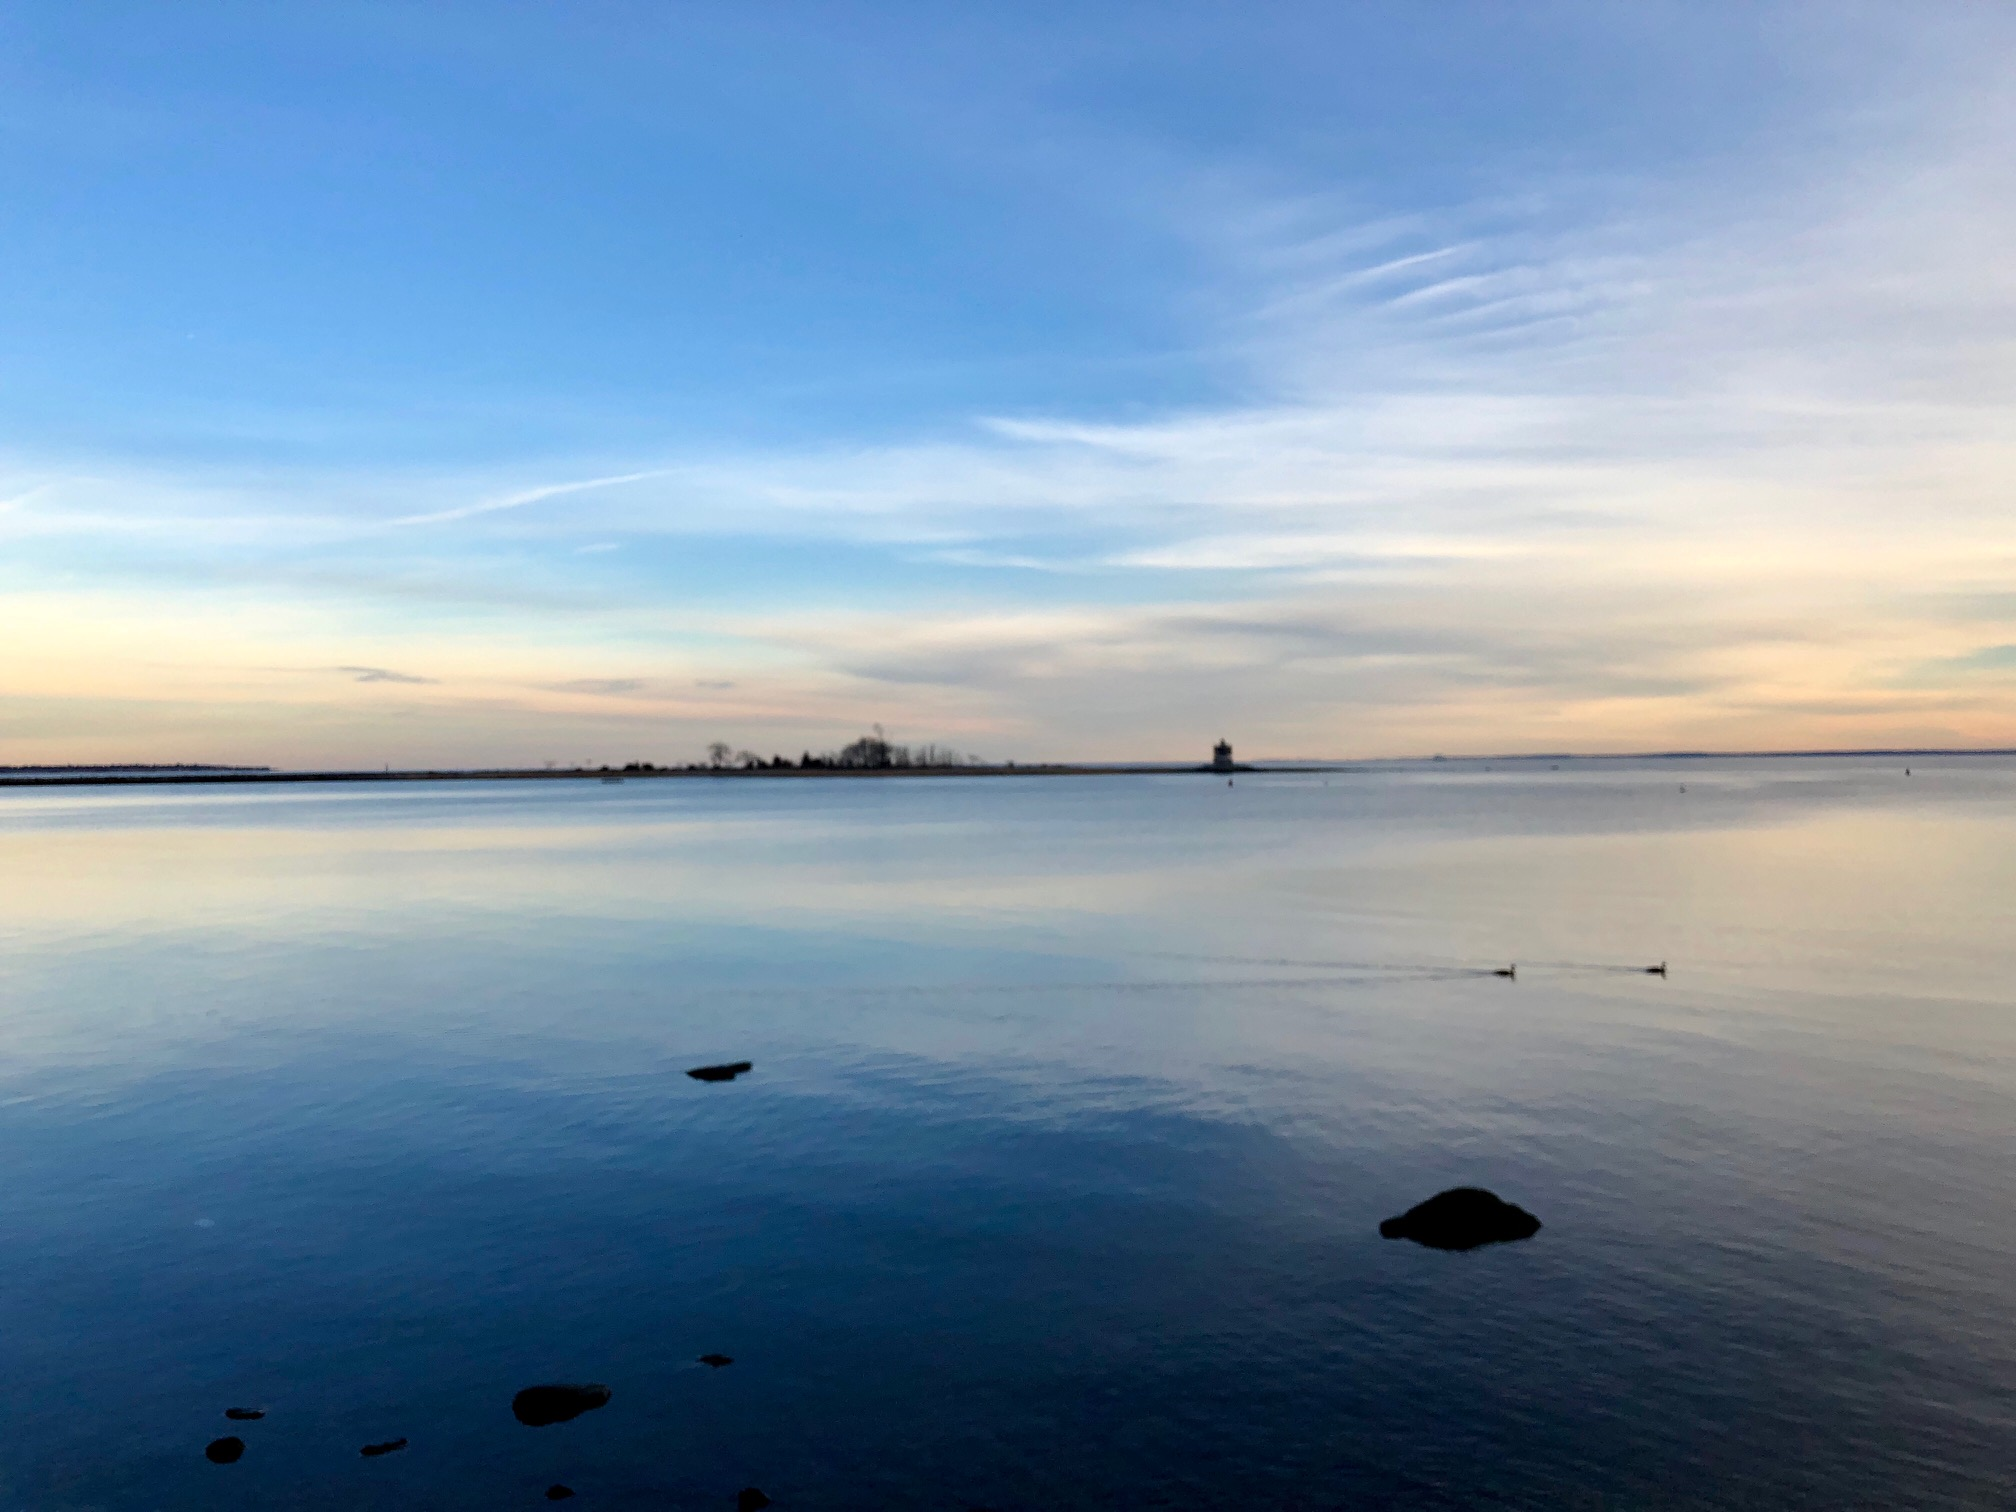 January walk at St. Mary's by the Sea in Black Rock (Bridgeport)